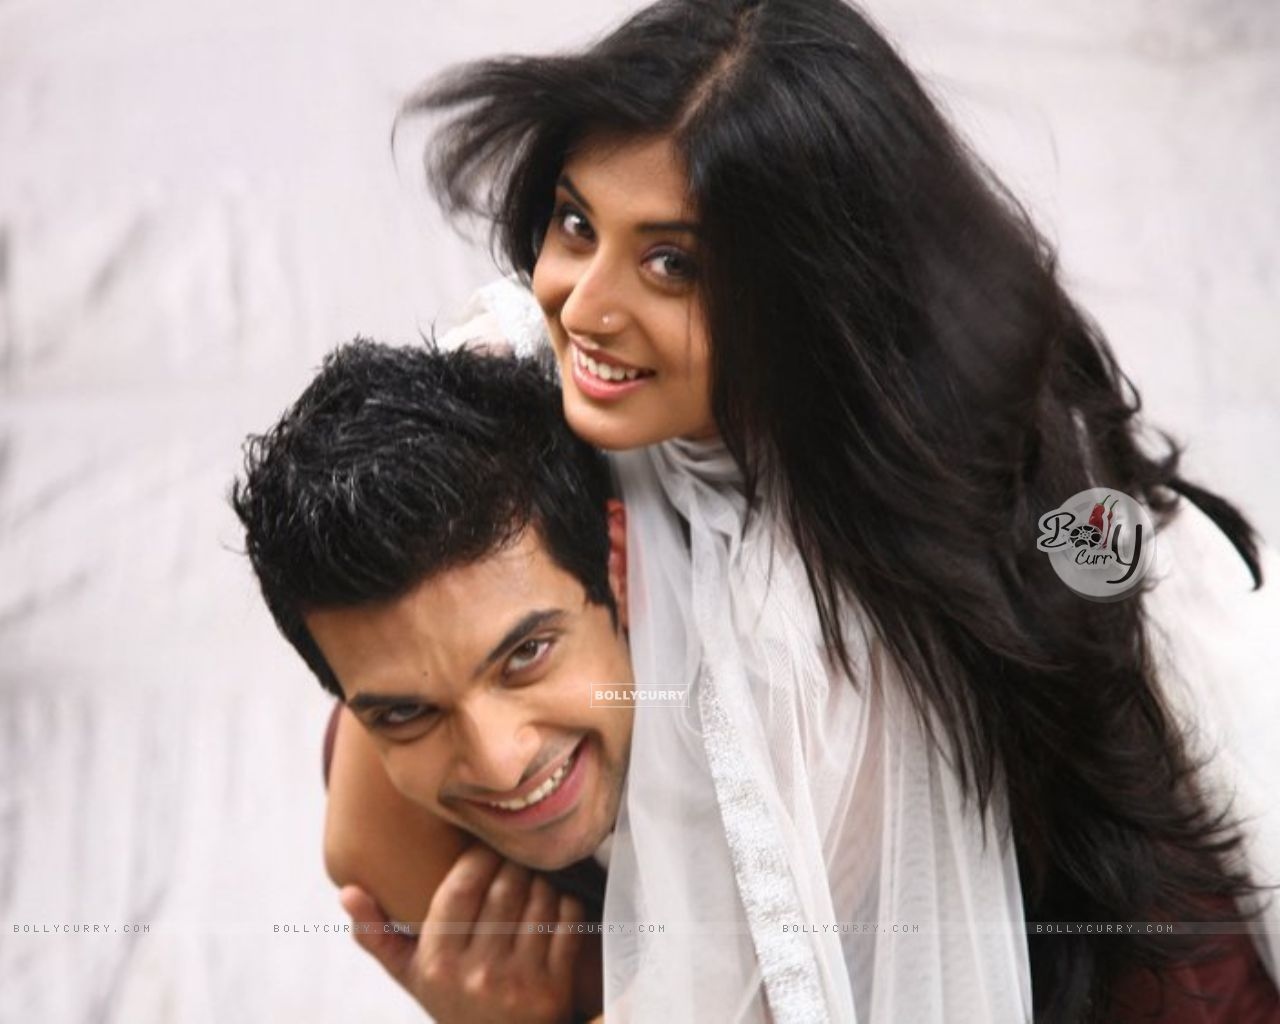 Wallpaper Karan Kundra And Kritika Kamra As Arjun And Arohi In